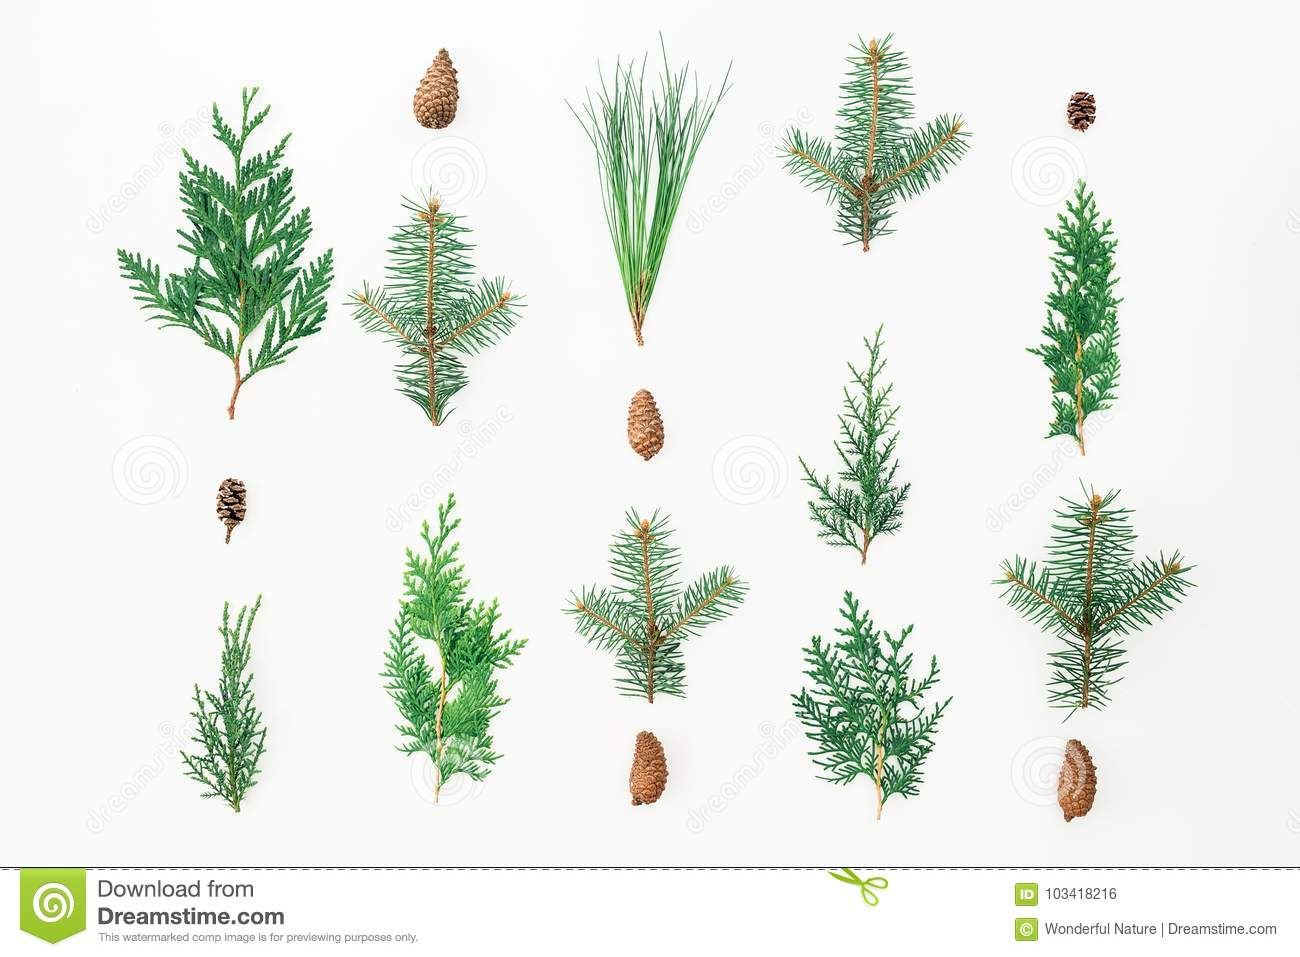 Christmas pattern of winter trees on white background. Christmas or New year concept. Flat lay, top view